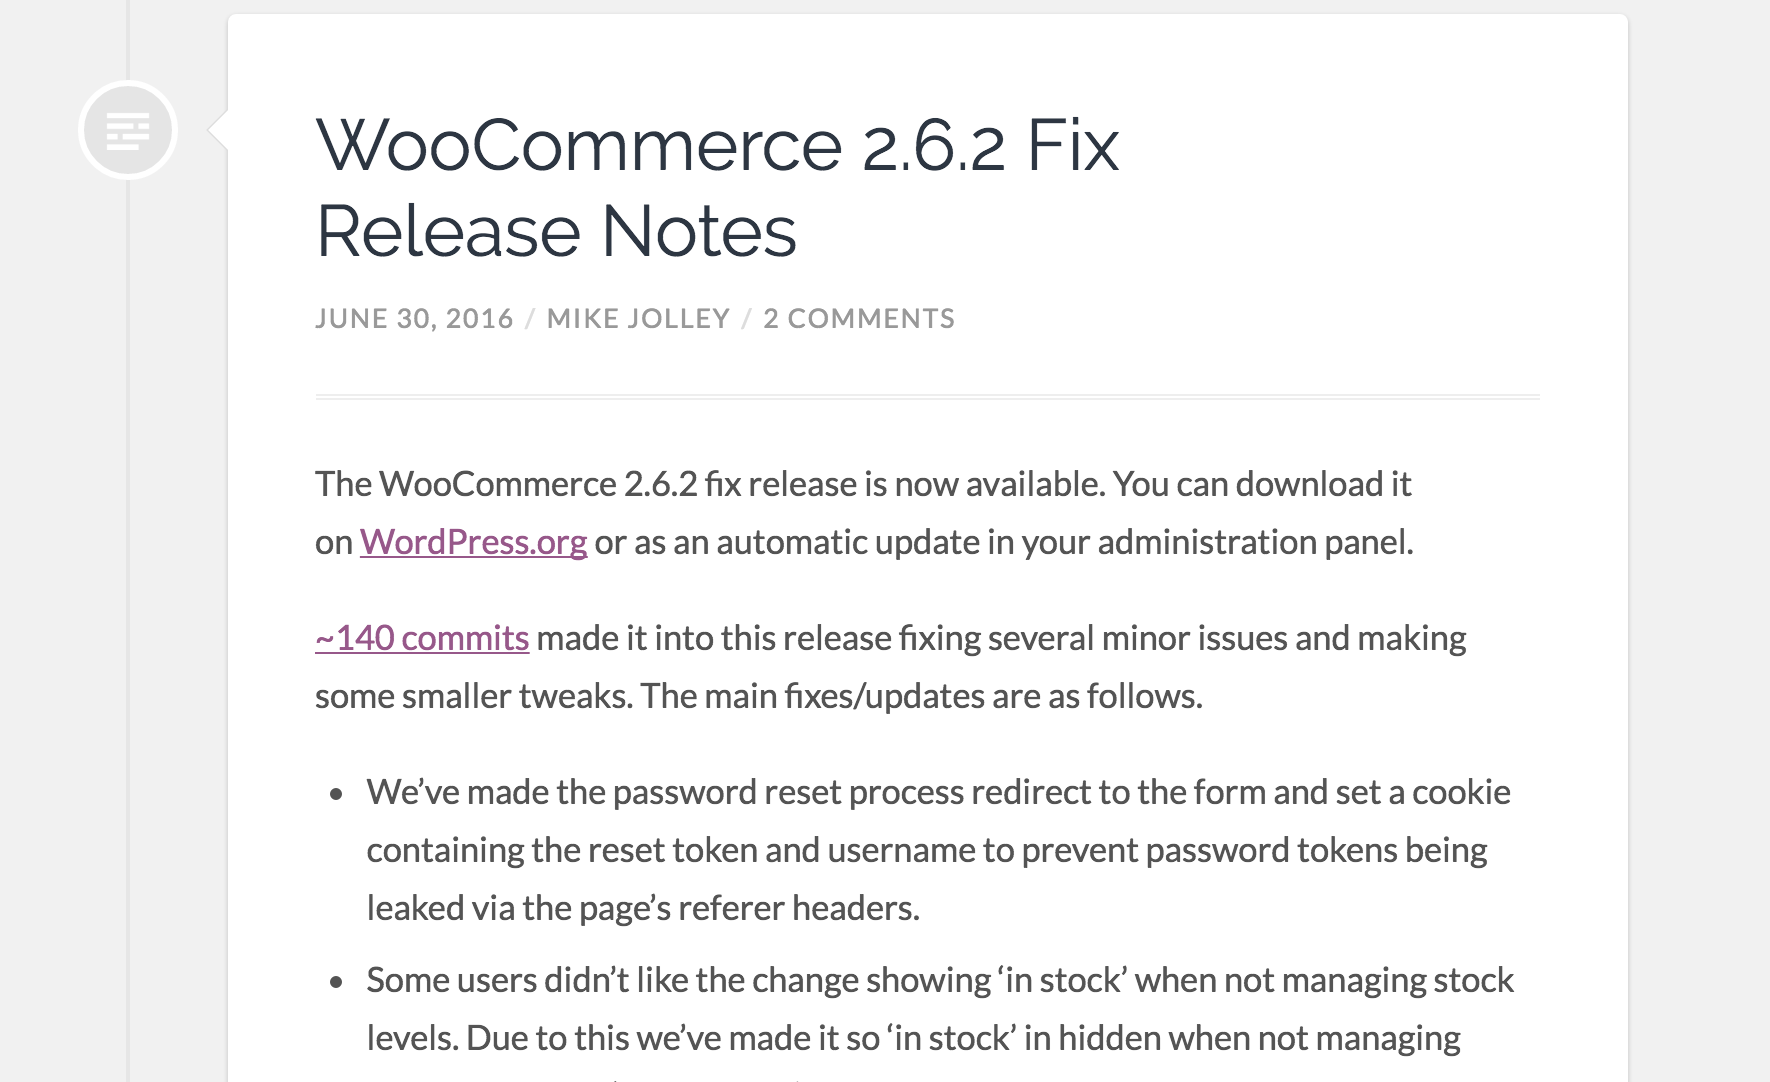 Updates, like the recent 2.6.2 fix release, keep WooCommerce -- and you -- safe & secure.